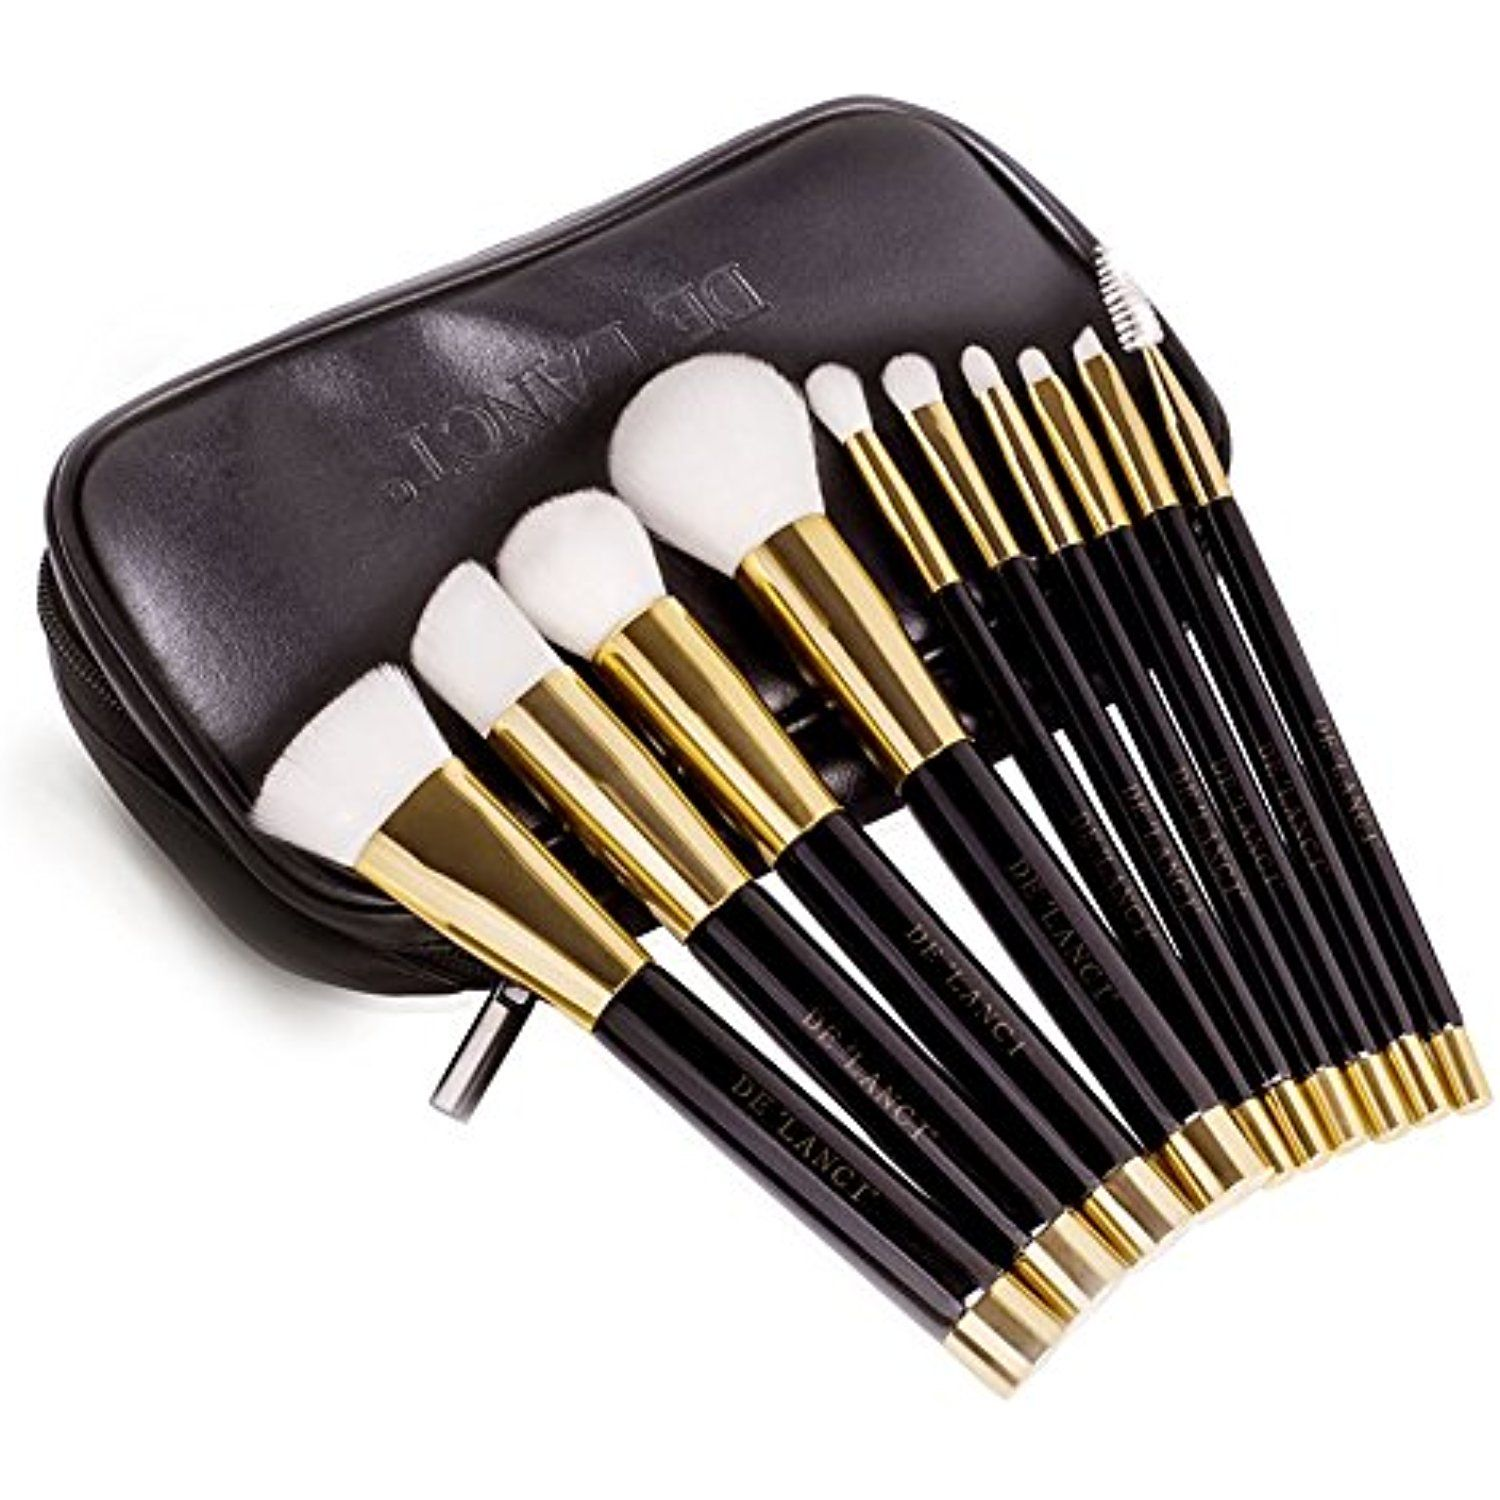 DE'LANCI Synthetic Contour Makeup Brush Kit with Leather